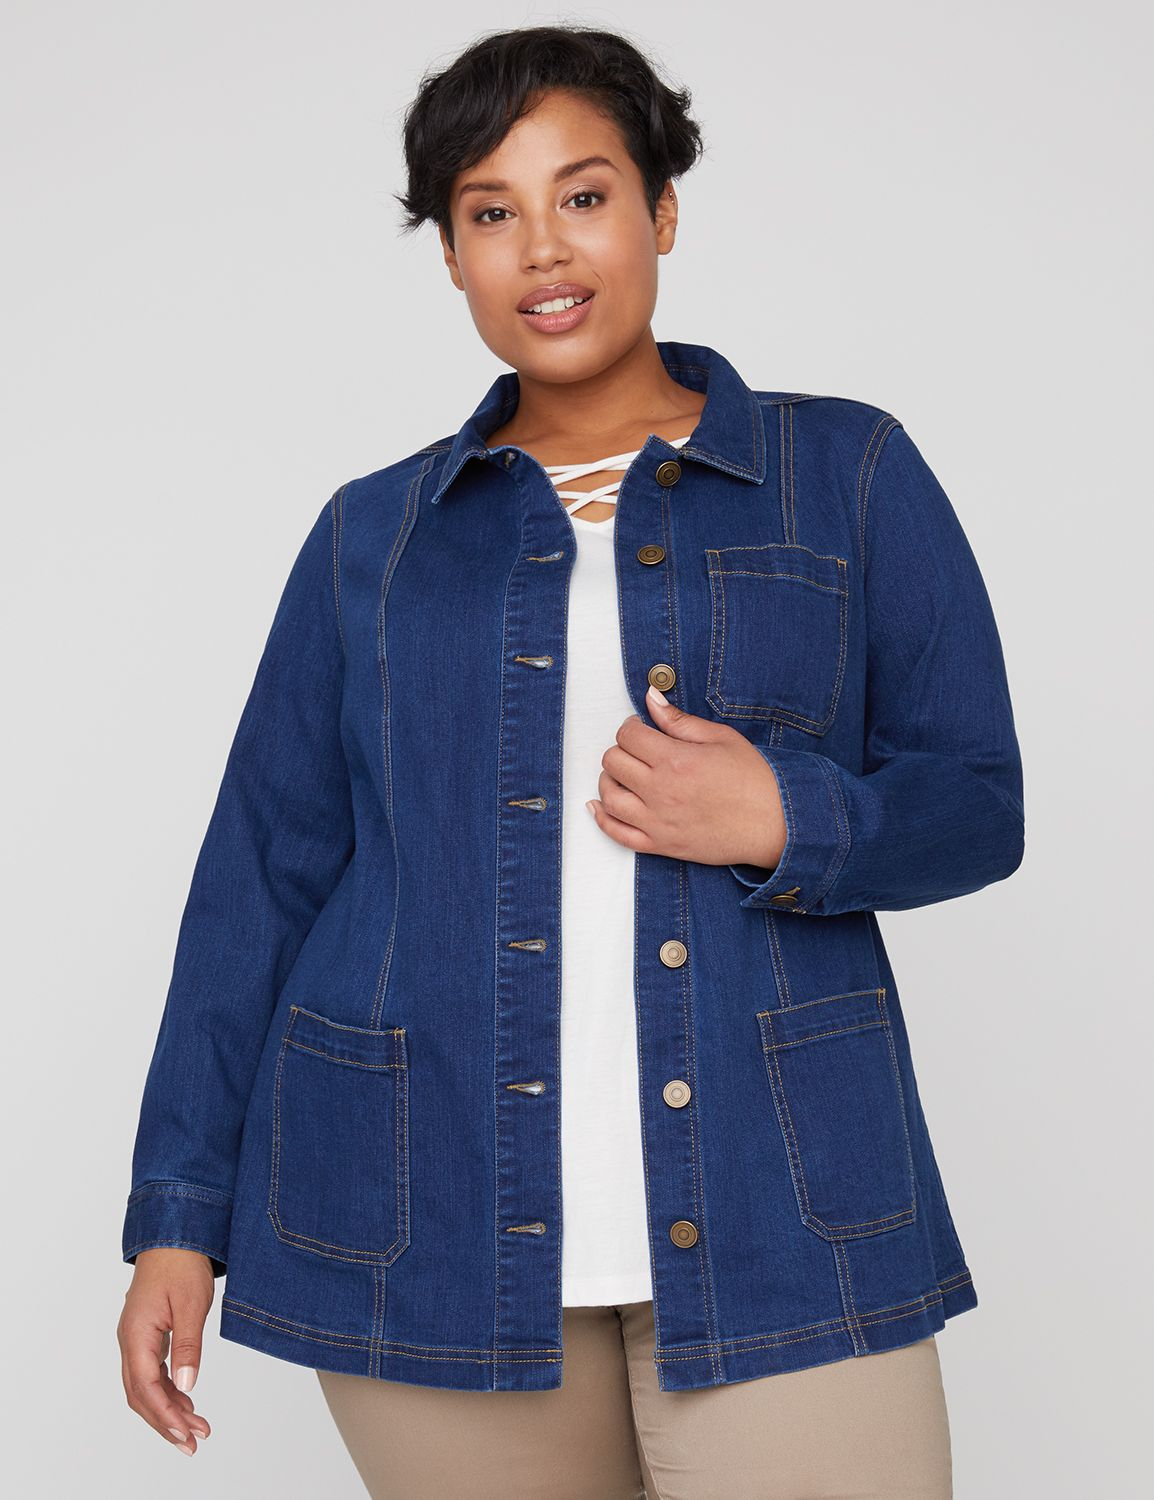 "An effortless layer, this lightweight jean jacket offers versatile style and ultimate ease. Classic collar and buttonfront design. Longer length for added coverage and comfort. Long sleeve with single-button closure at cuffs. Front pockets. Back vent. Item Number #315414, 56% Cotton/14% Rayon/28% Polyester/2% Spandex, Machine Wash, Imported Plus Size Top Plus Size Denim, Length: 31"" , Plus Sizes 0X-5X, Catherines Plus Sizes"